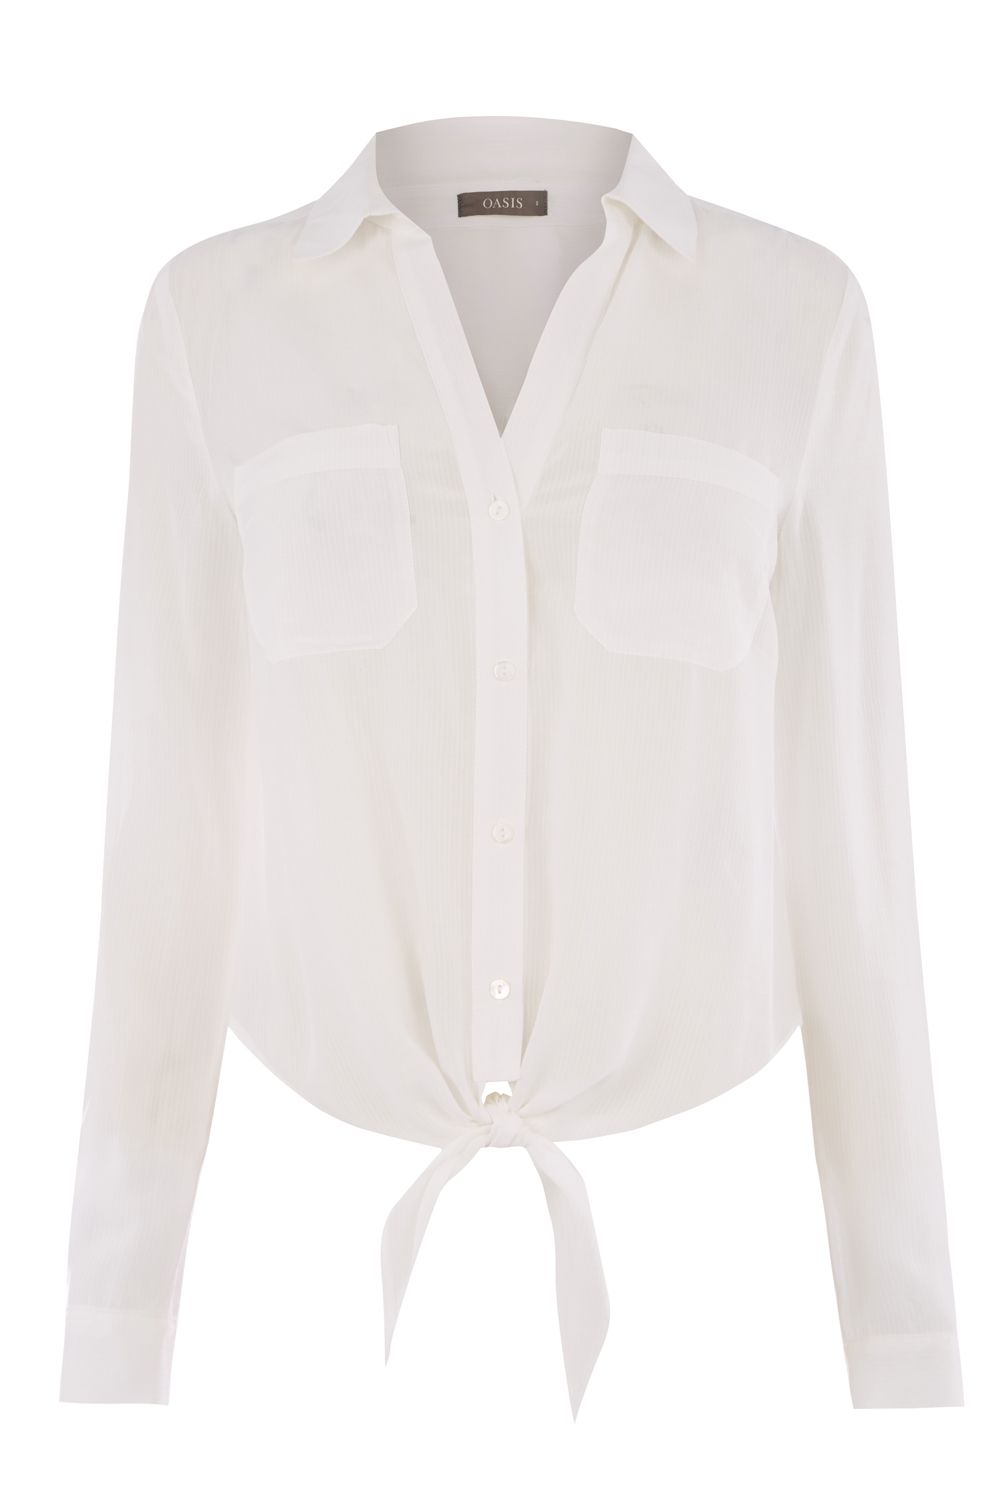 Oasis Tie Front Shirt, White